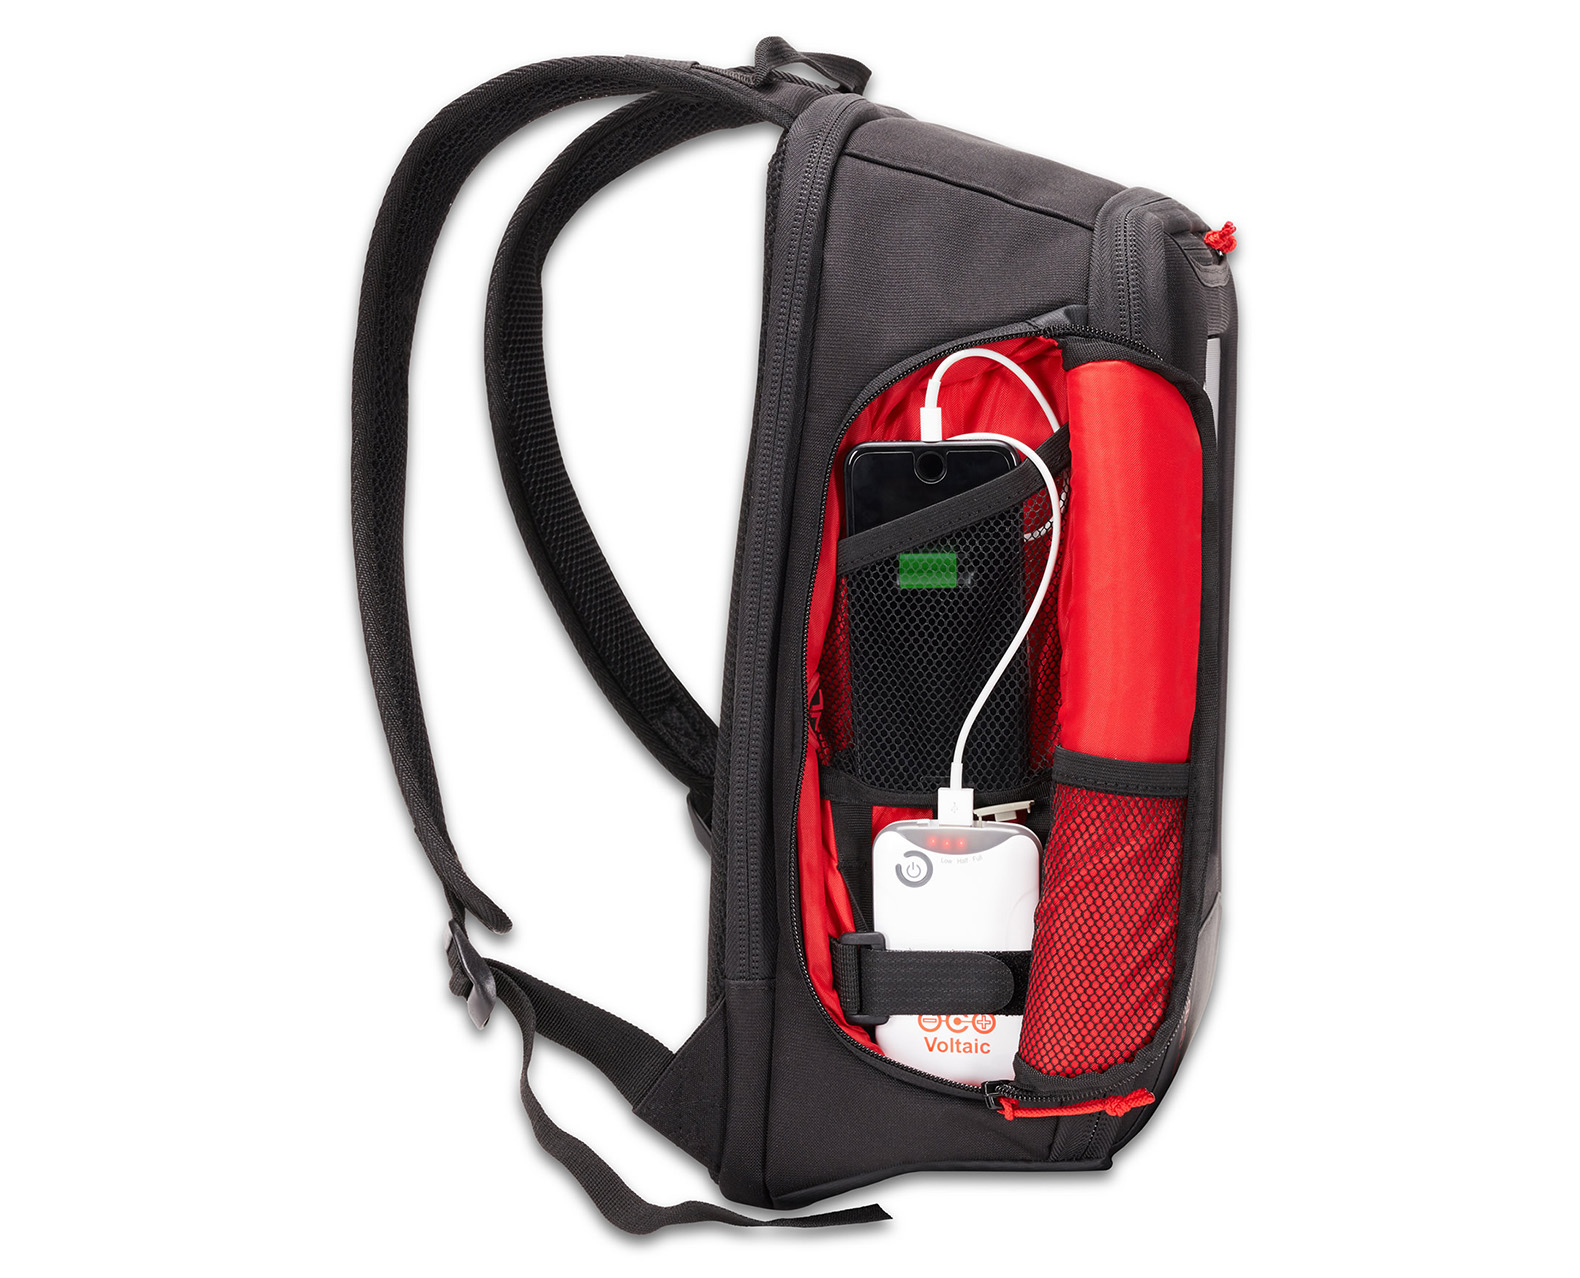 Score One Of 4 Voltaic Converter Solar Backpacks In